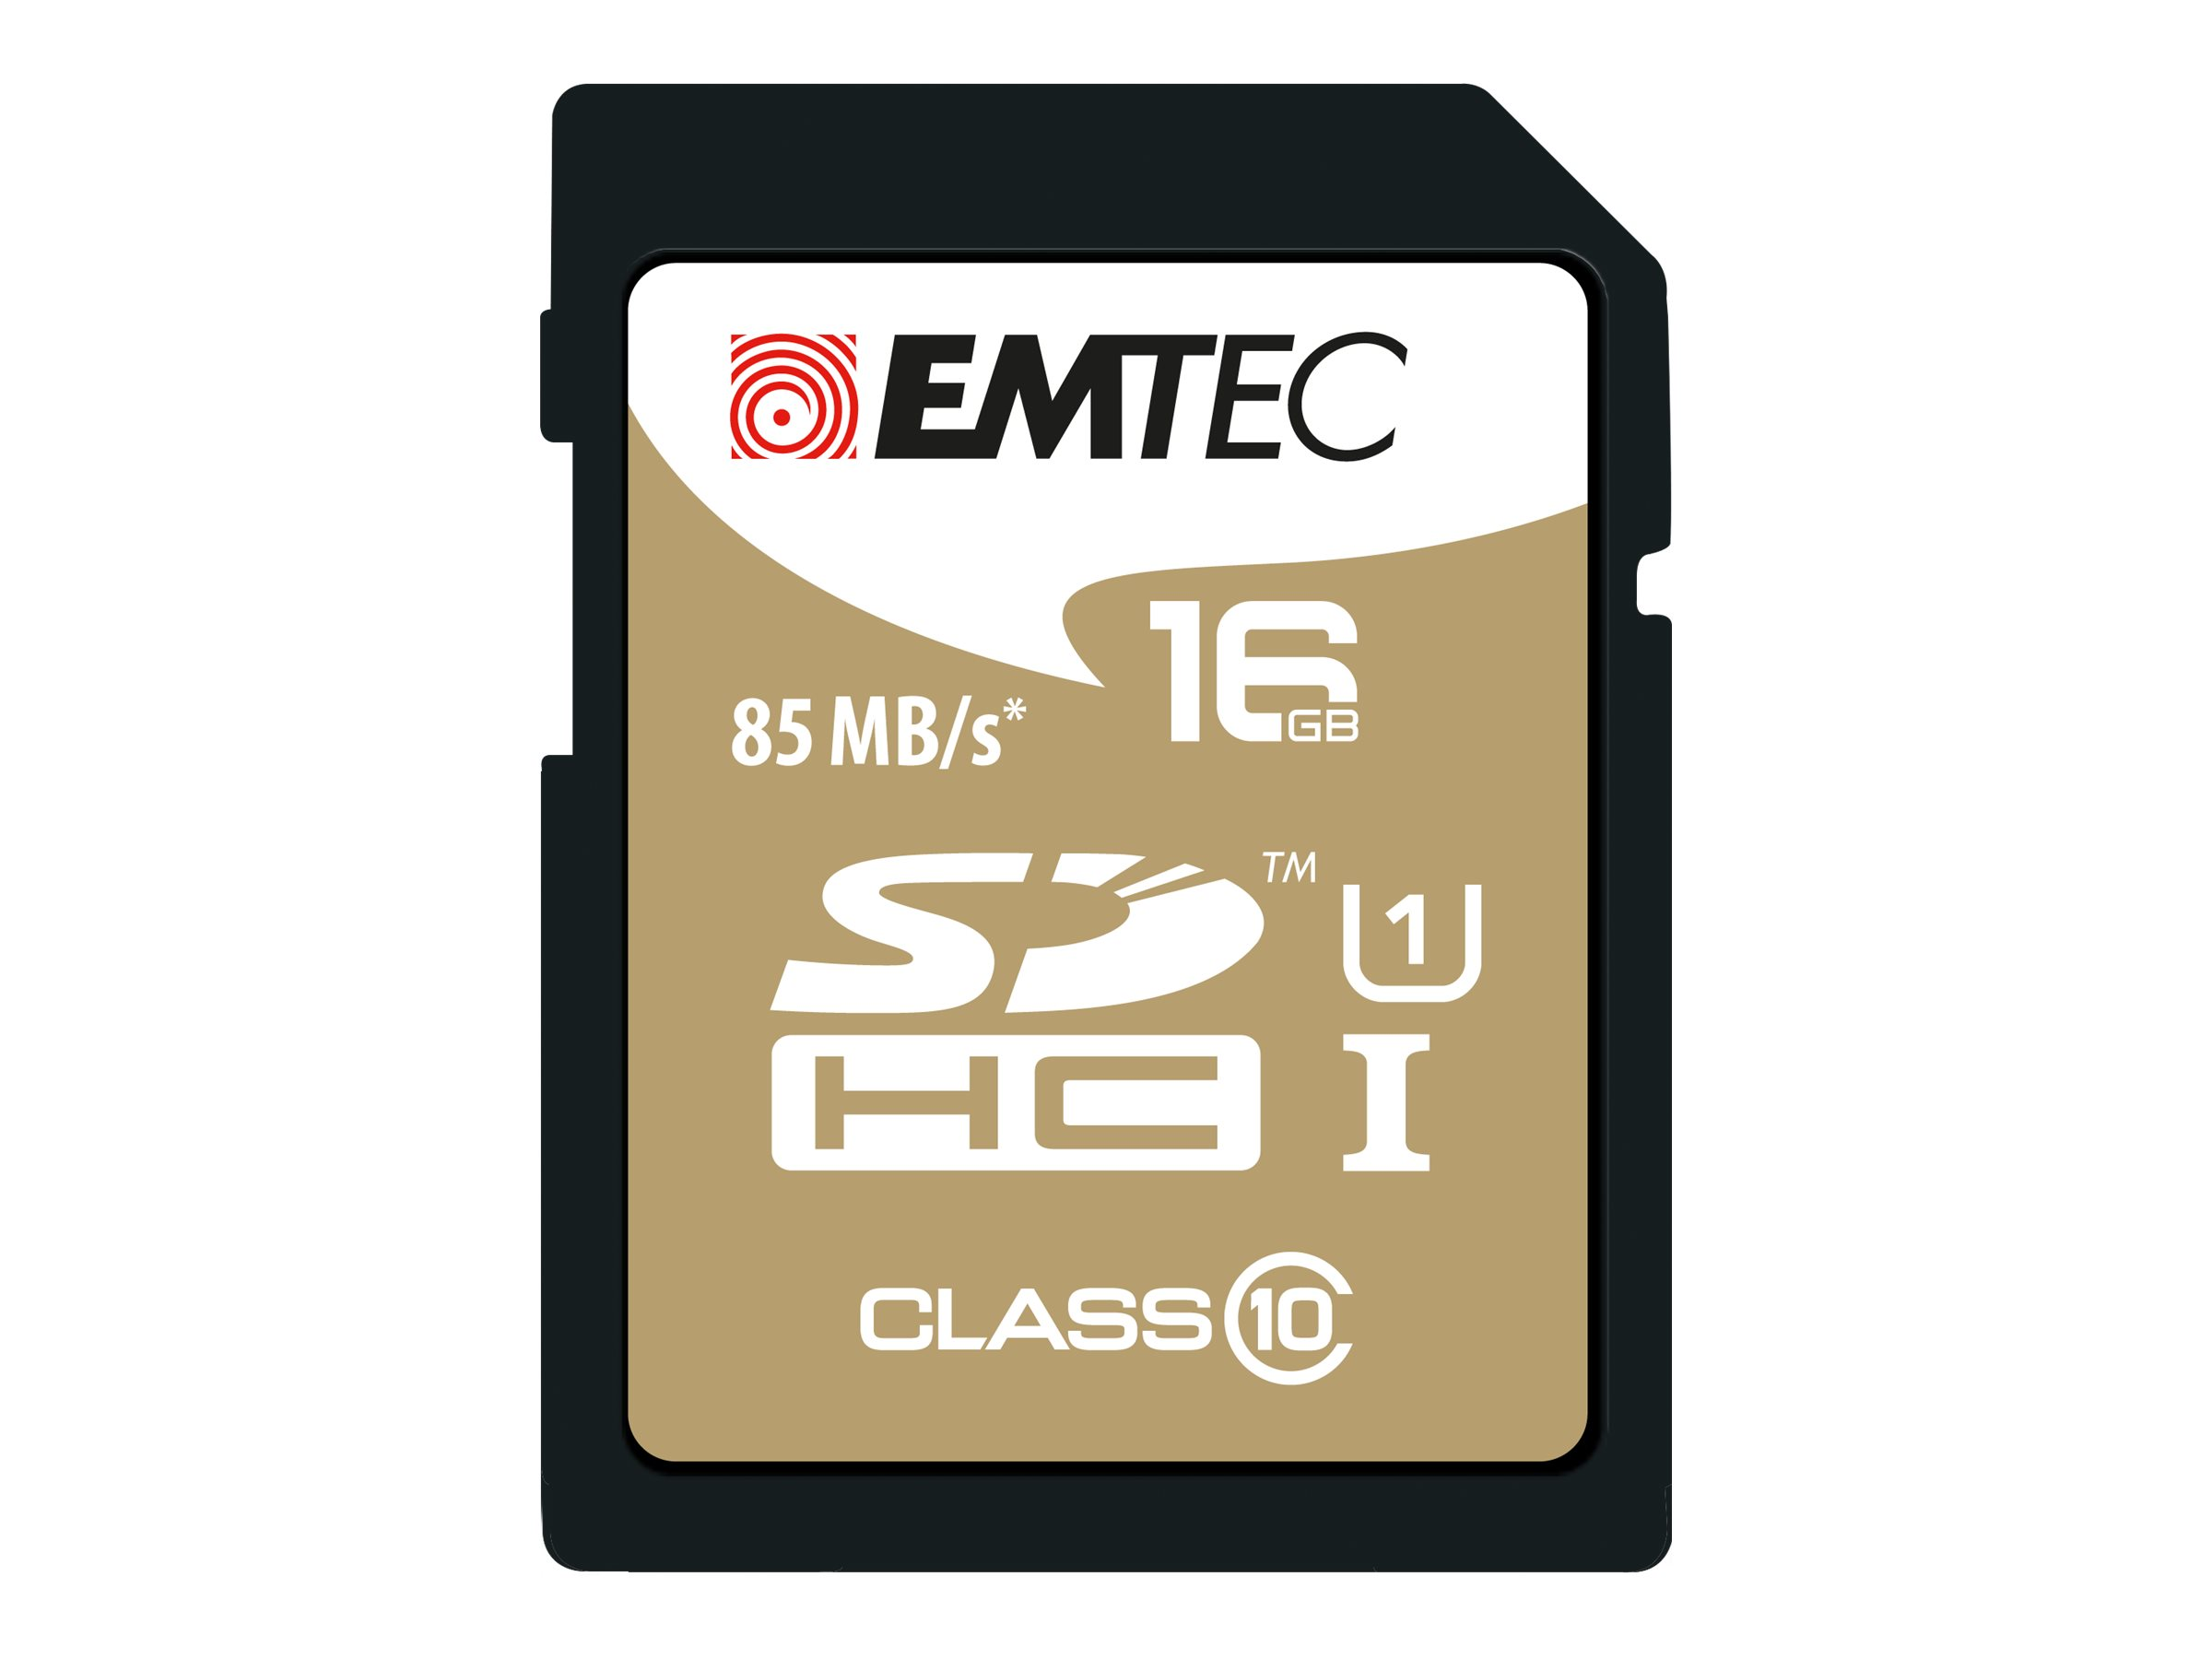 EMTEC Gold+ - Flash-Speicherkarte - 16 GB - Class 10 - SDHC